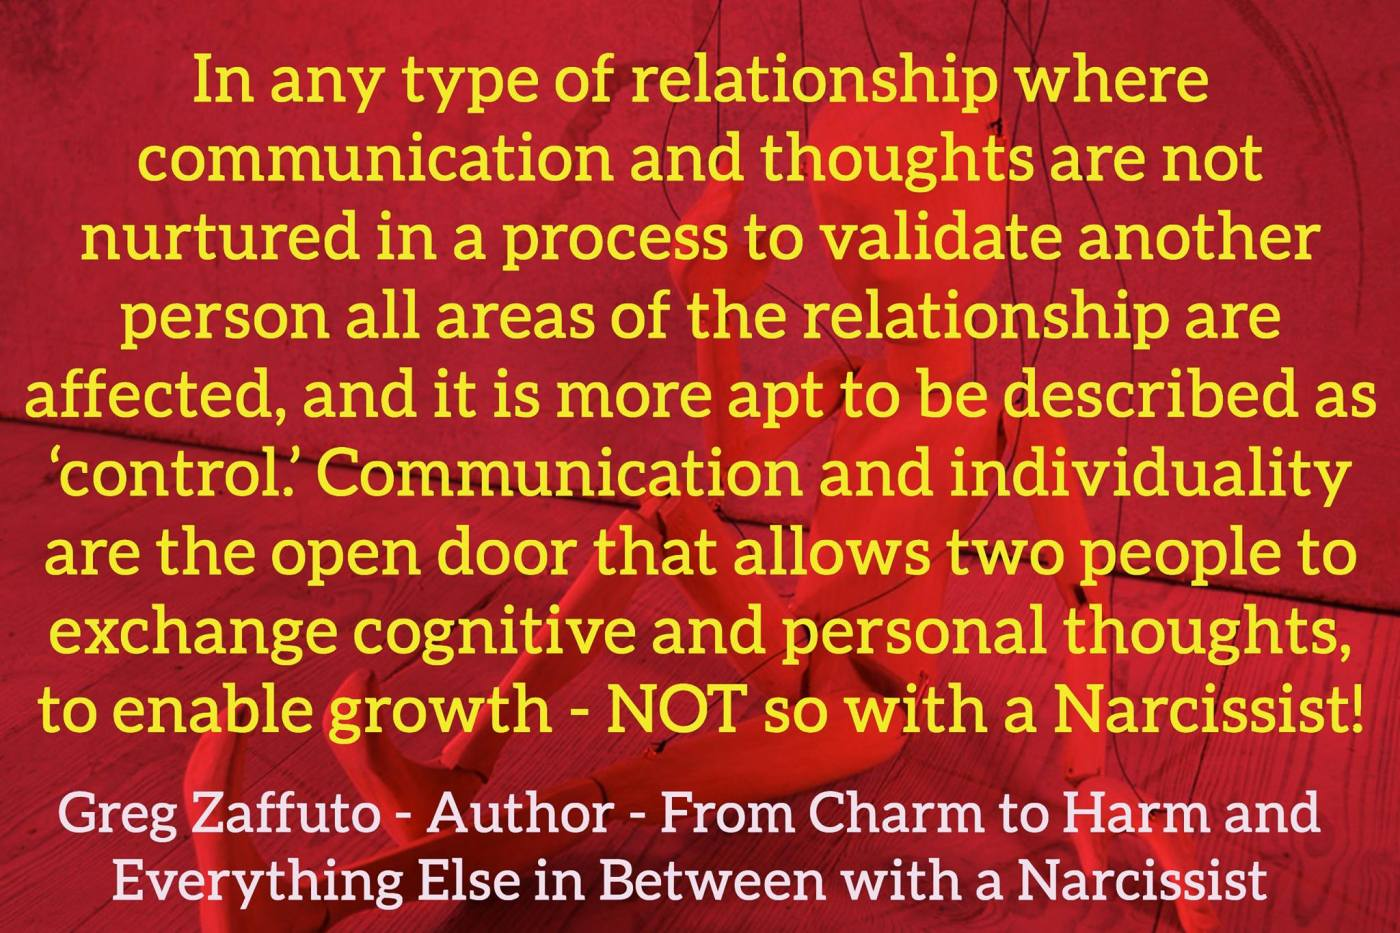 It is all about CONTROL with a Narcissist through emotional and psychological conditioning. Let's really understand this so we can STOP them from inflicting this destructive chaos.